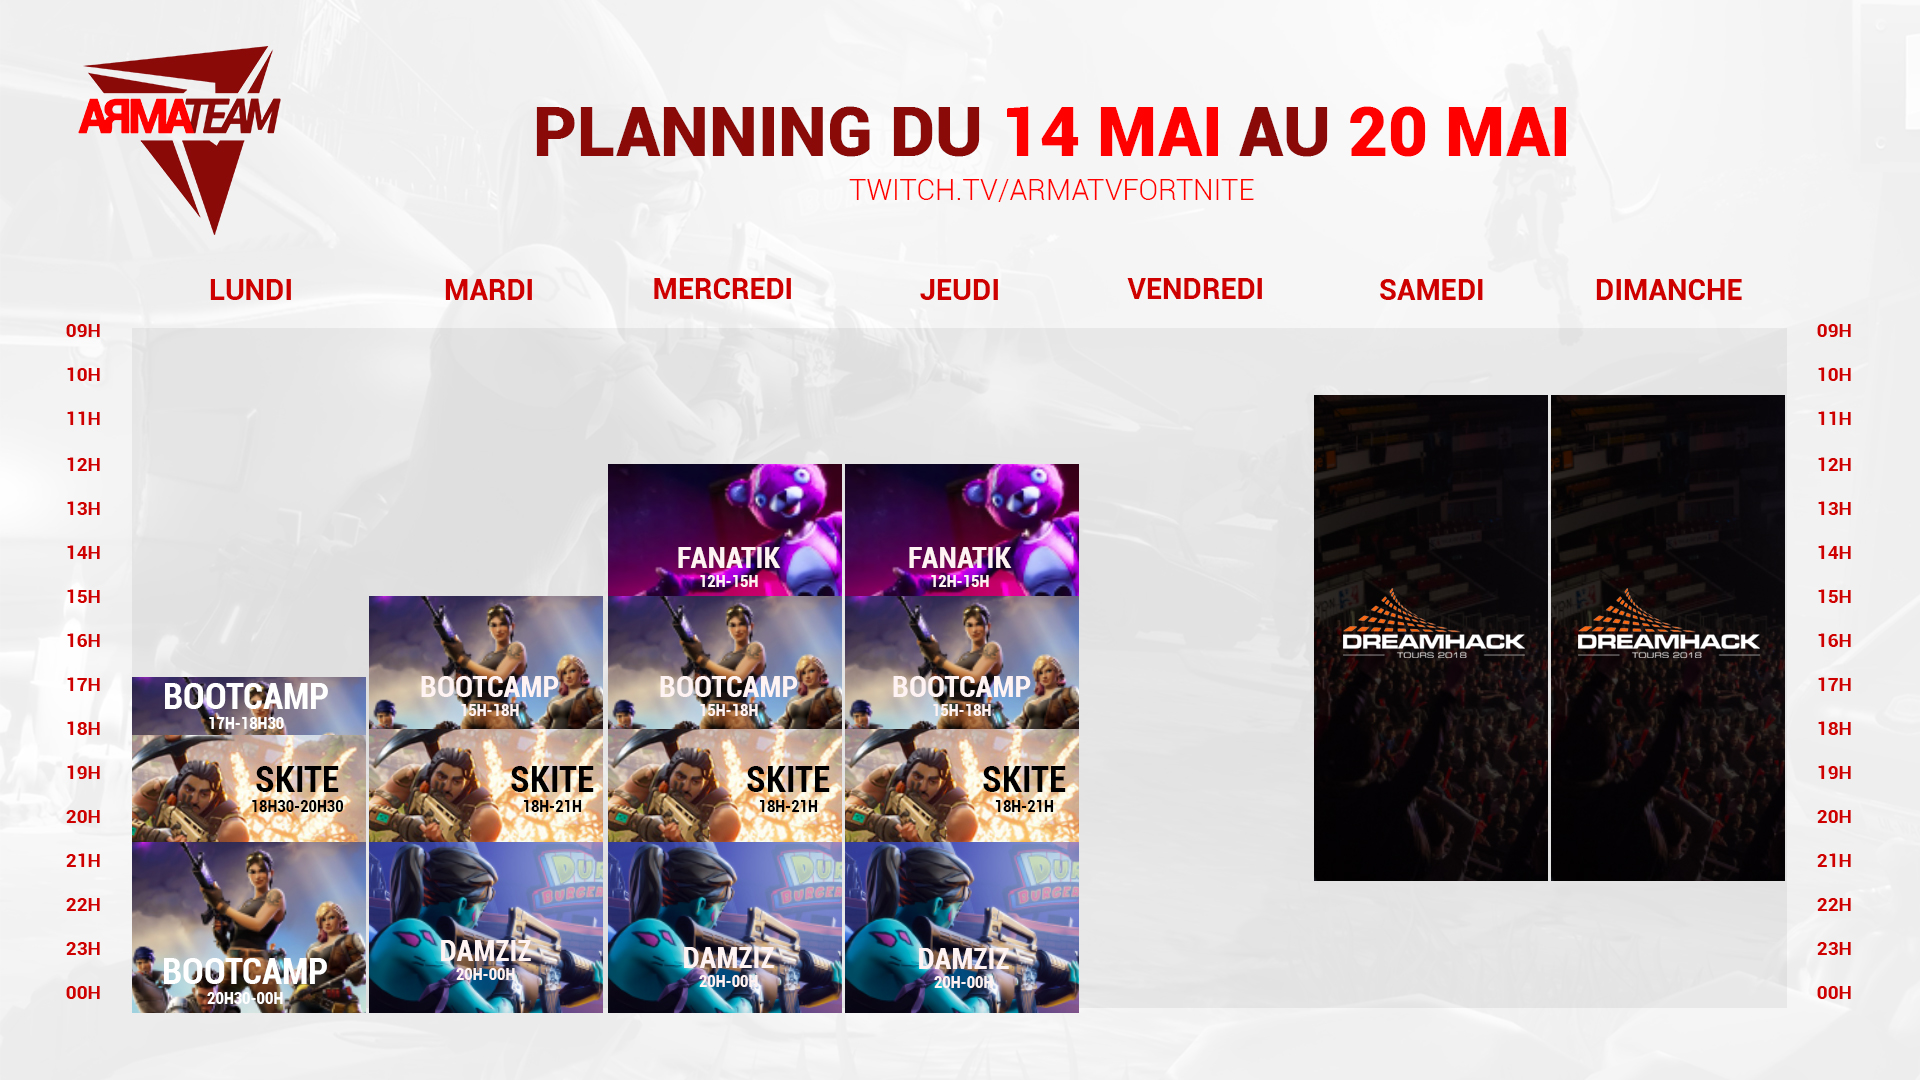 Planning ArmaTVLOL